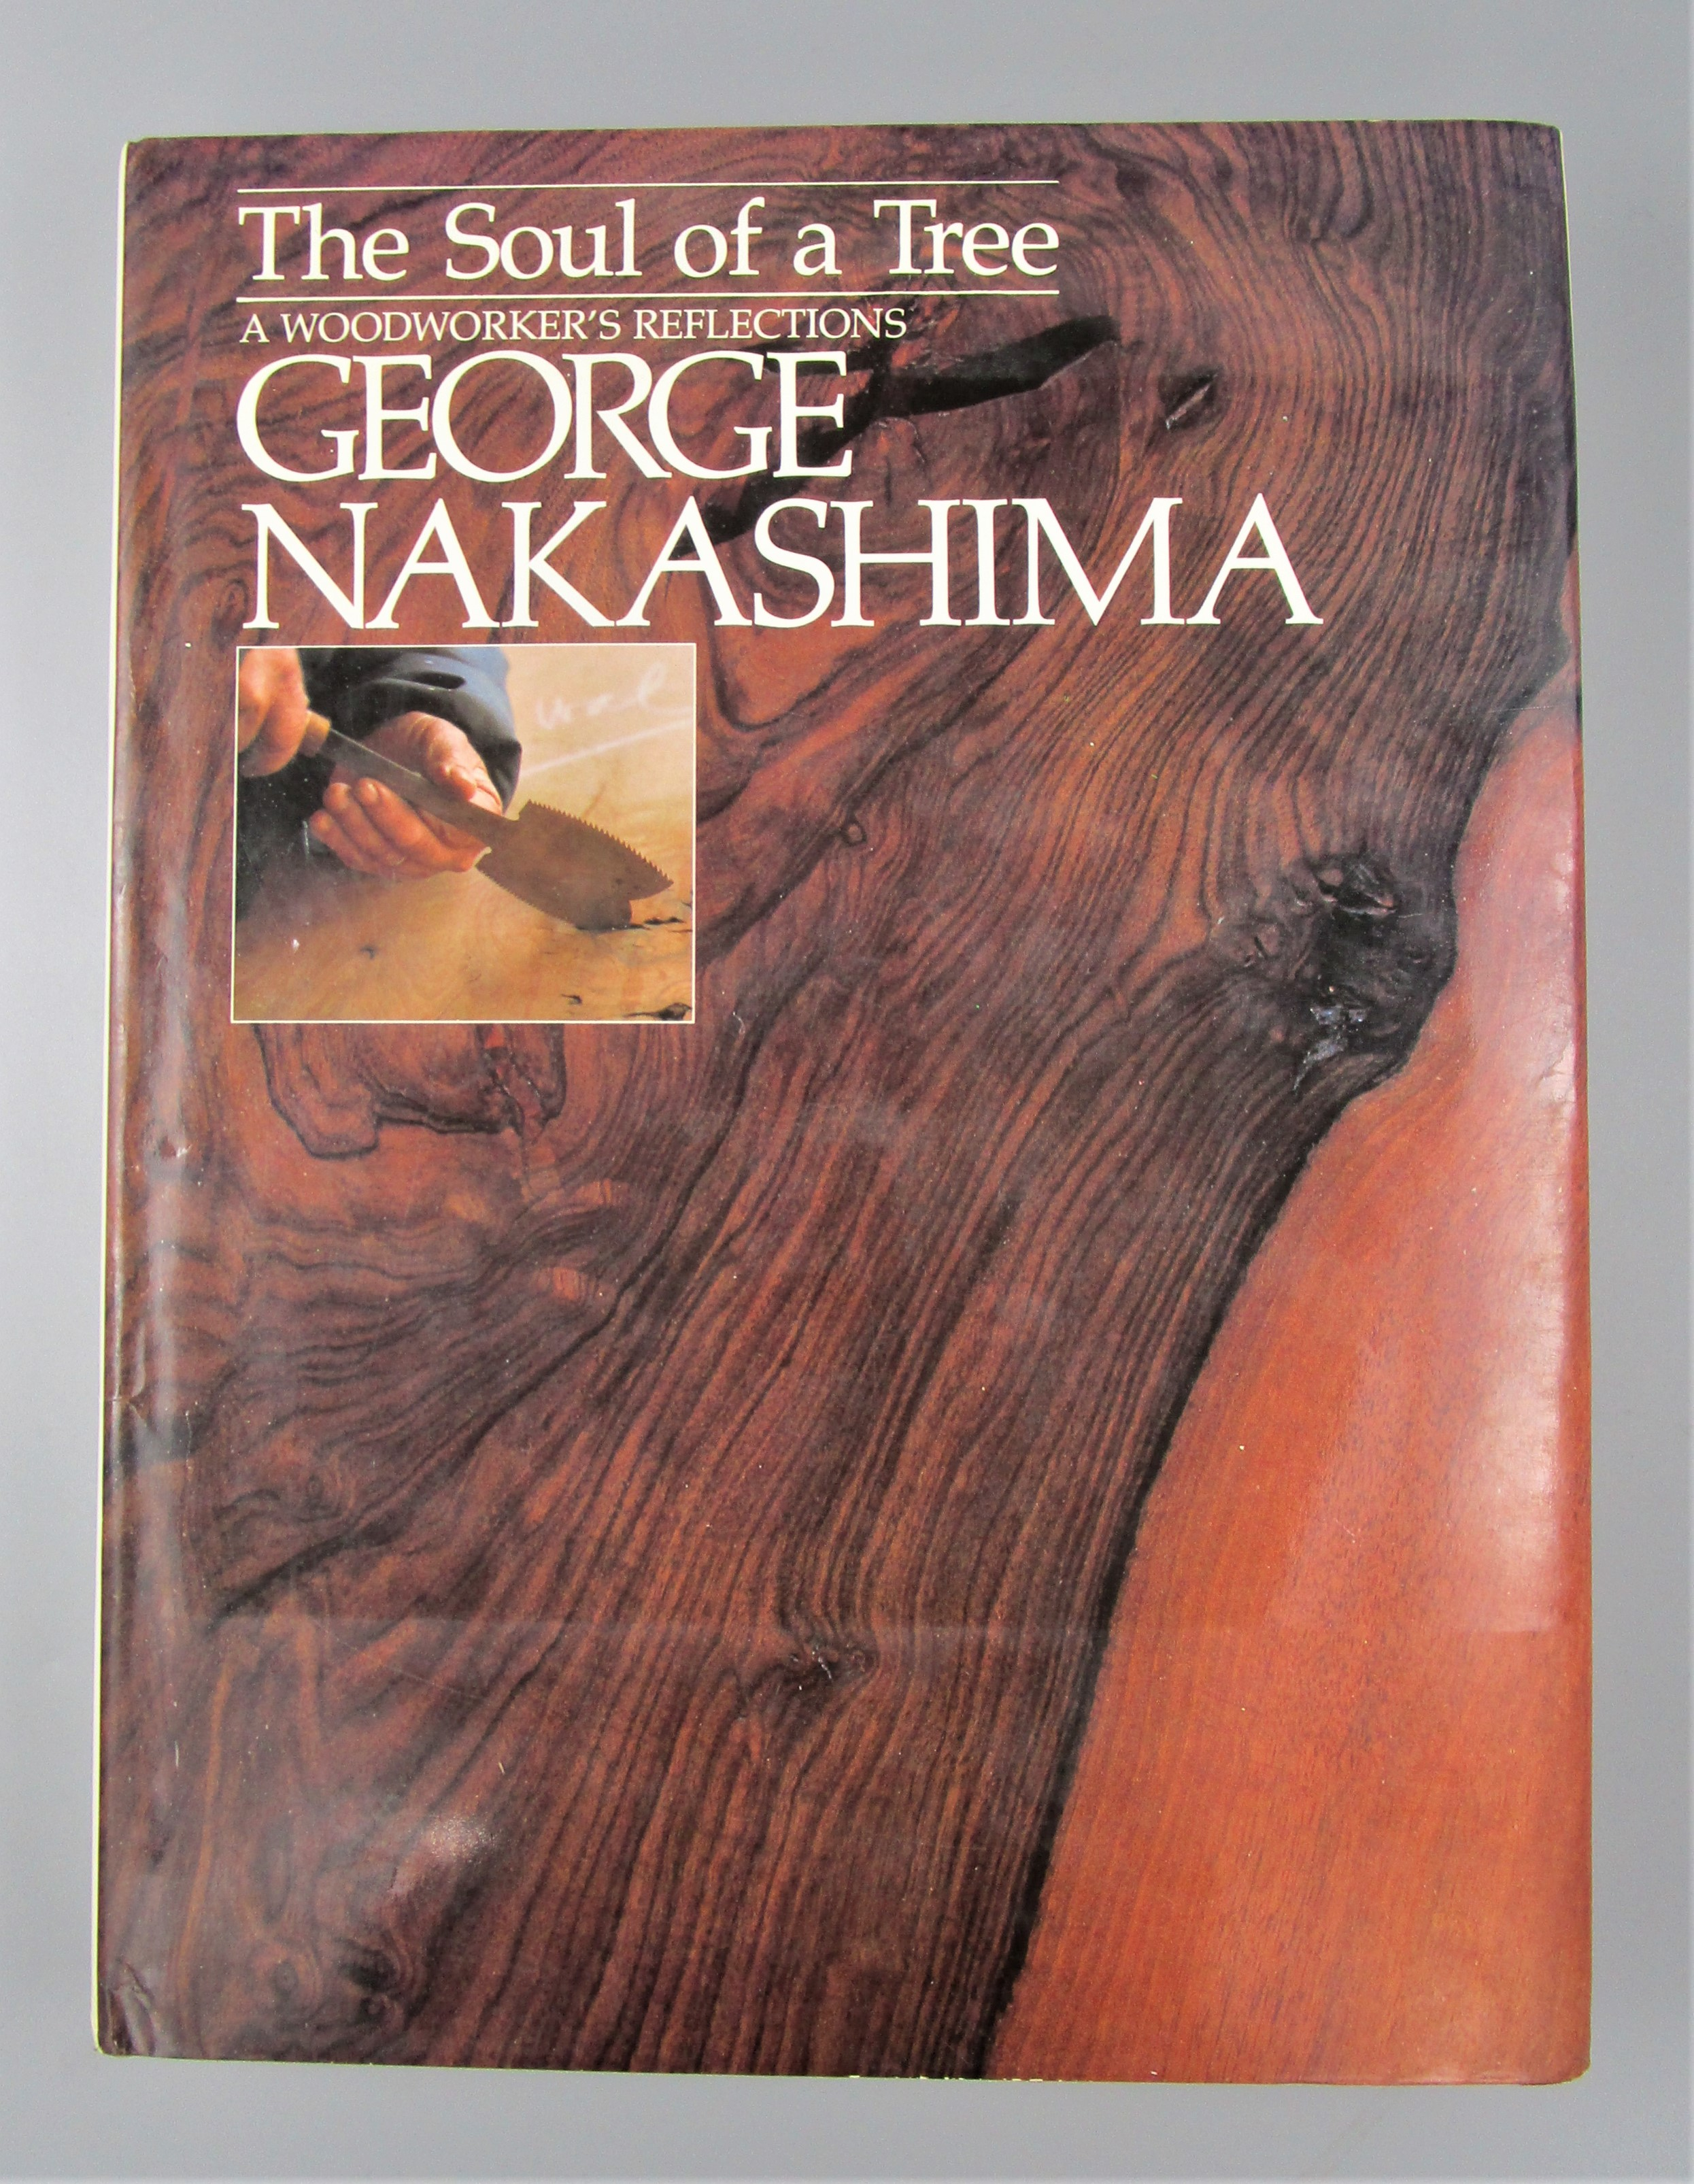 THE SOUL OF A TREE: A WOODWORKERS'S REFLECTIONS, by George Nakashima - 1981 [1st Ed]